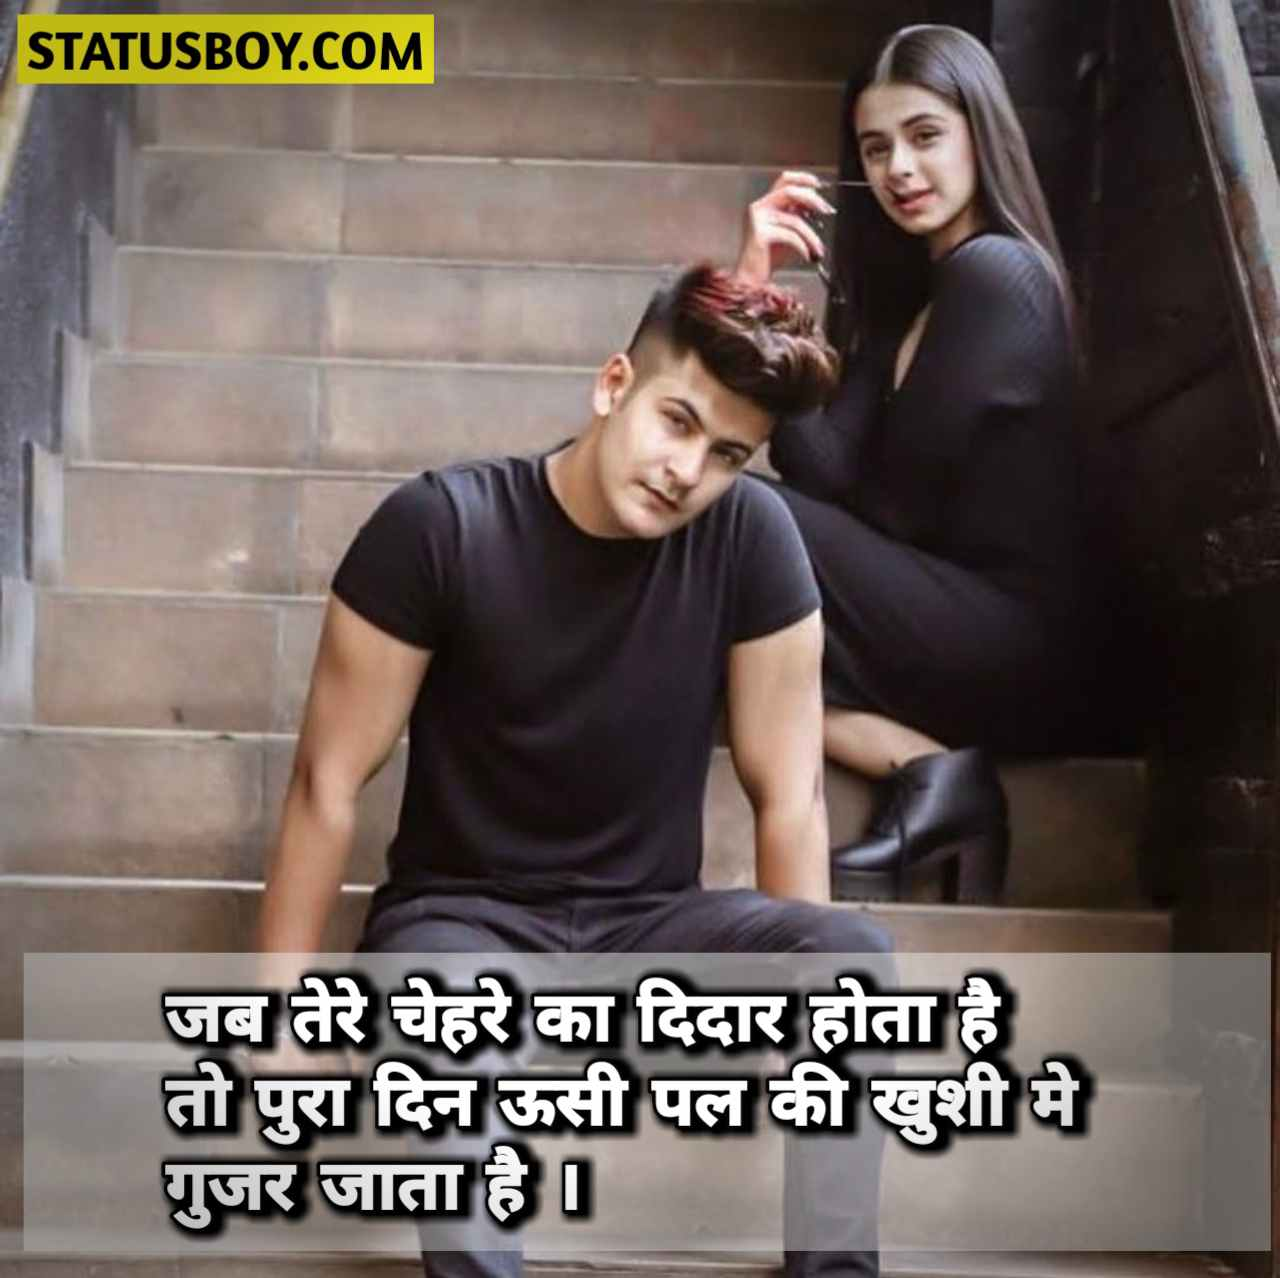 Romantic Status in Hindi: